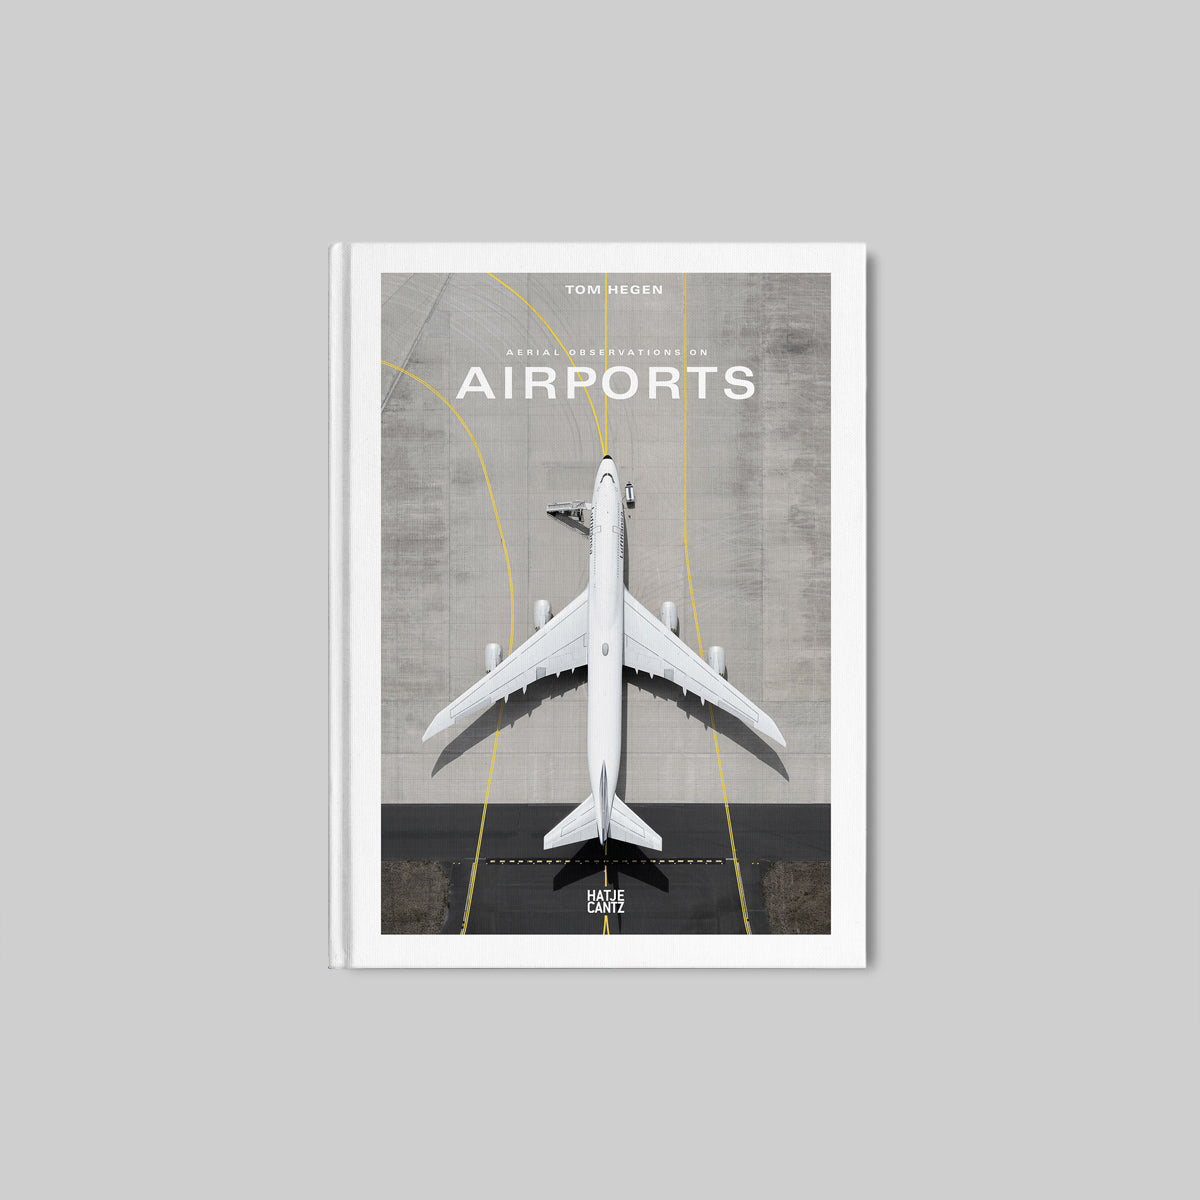 TOM HEGEN, AIRPORTS (SIGNED COLLECTOR'S EDITION)